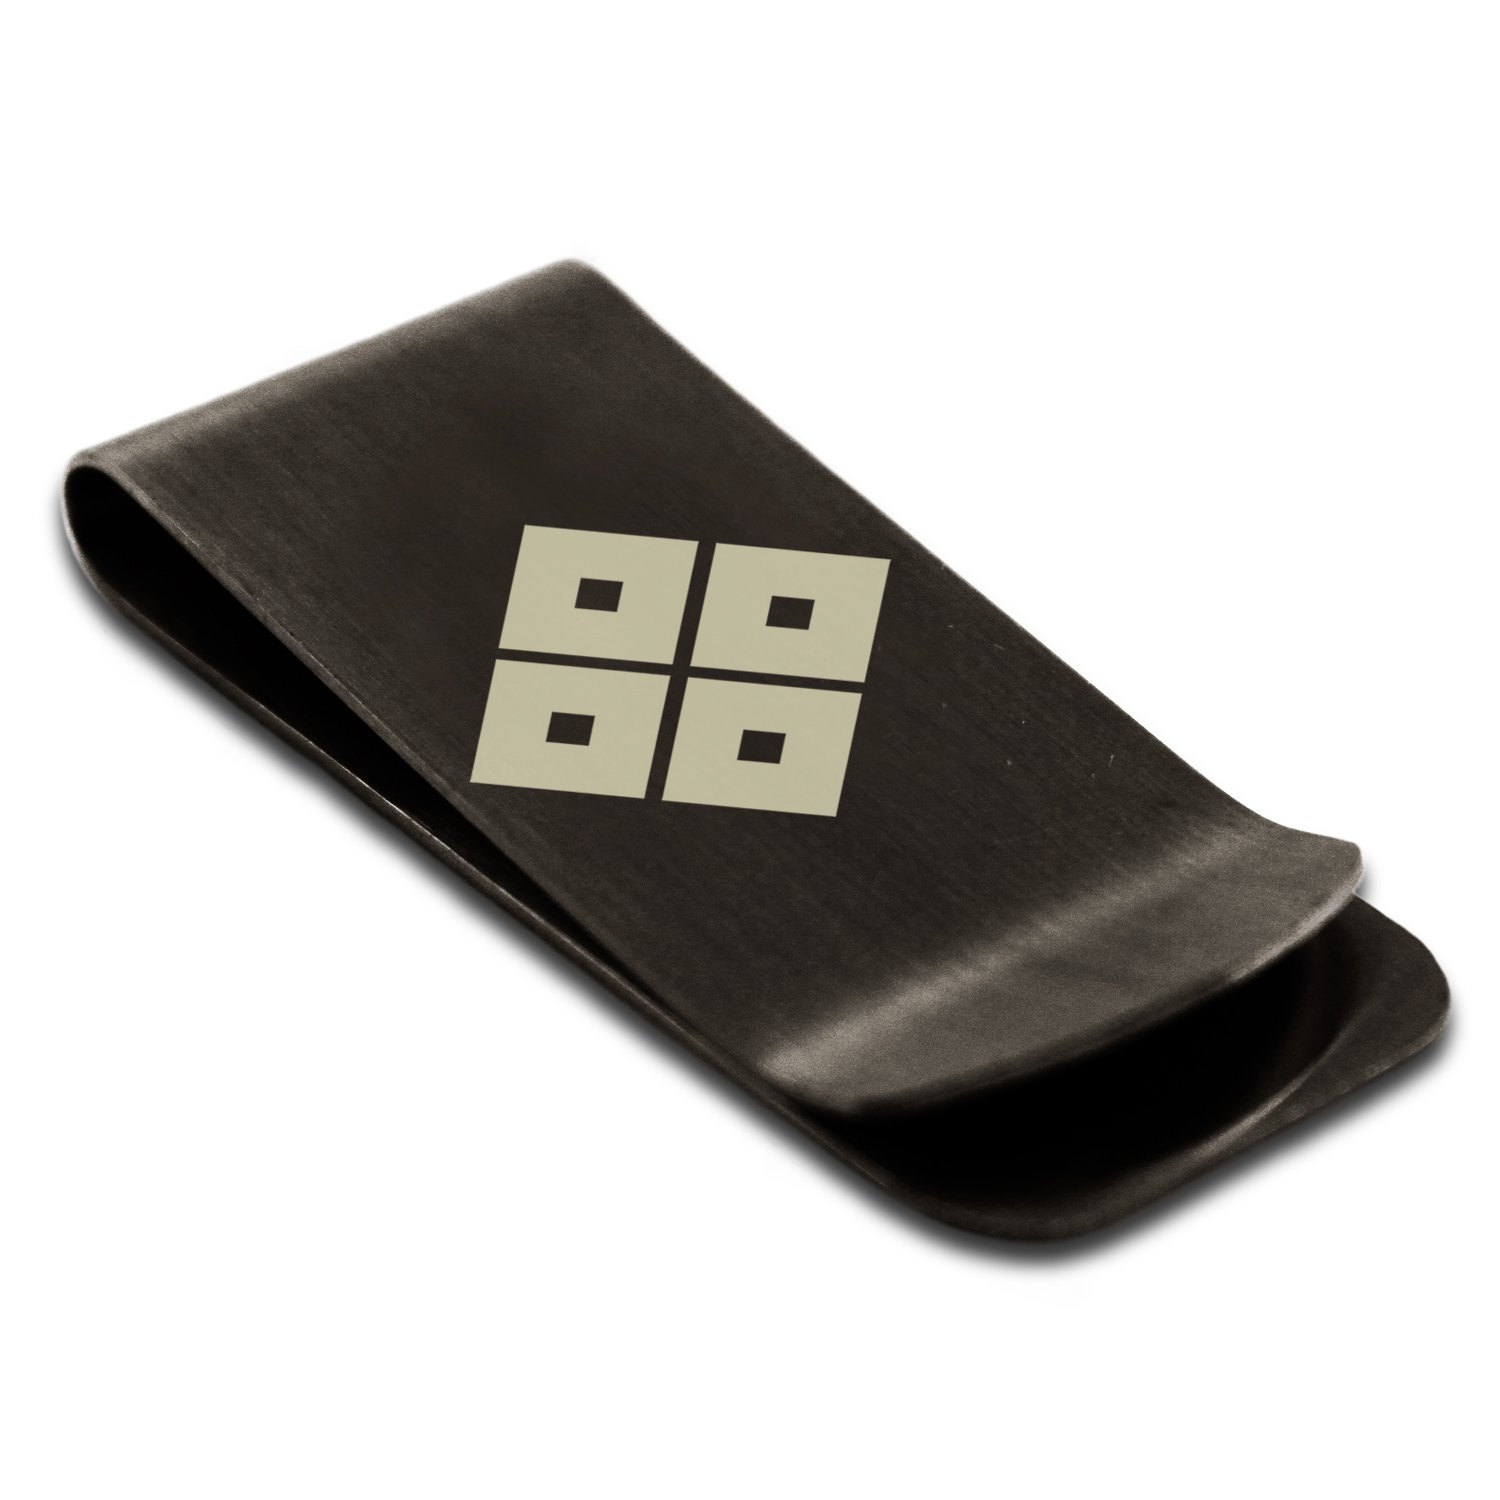 Stainless Steel Kamei Samurai Crest Engraved Money Clip Credit Card Holder